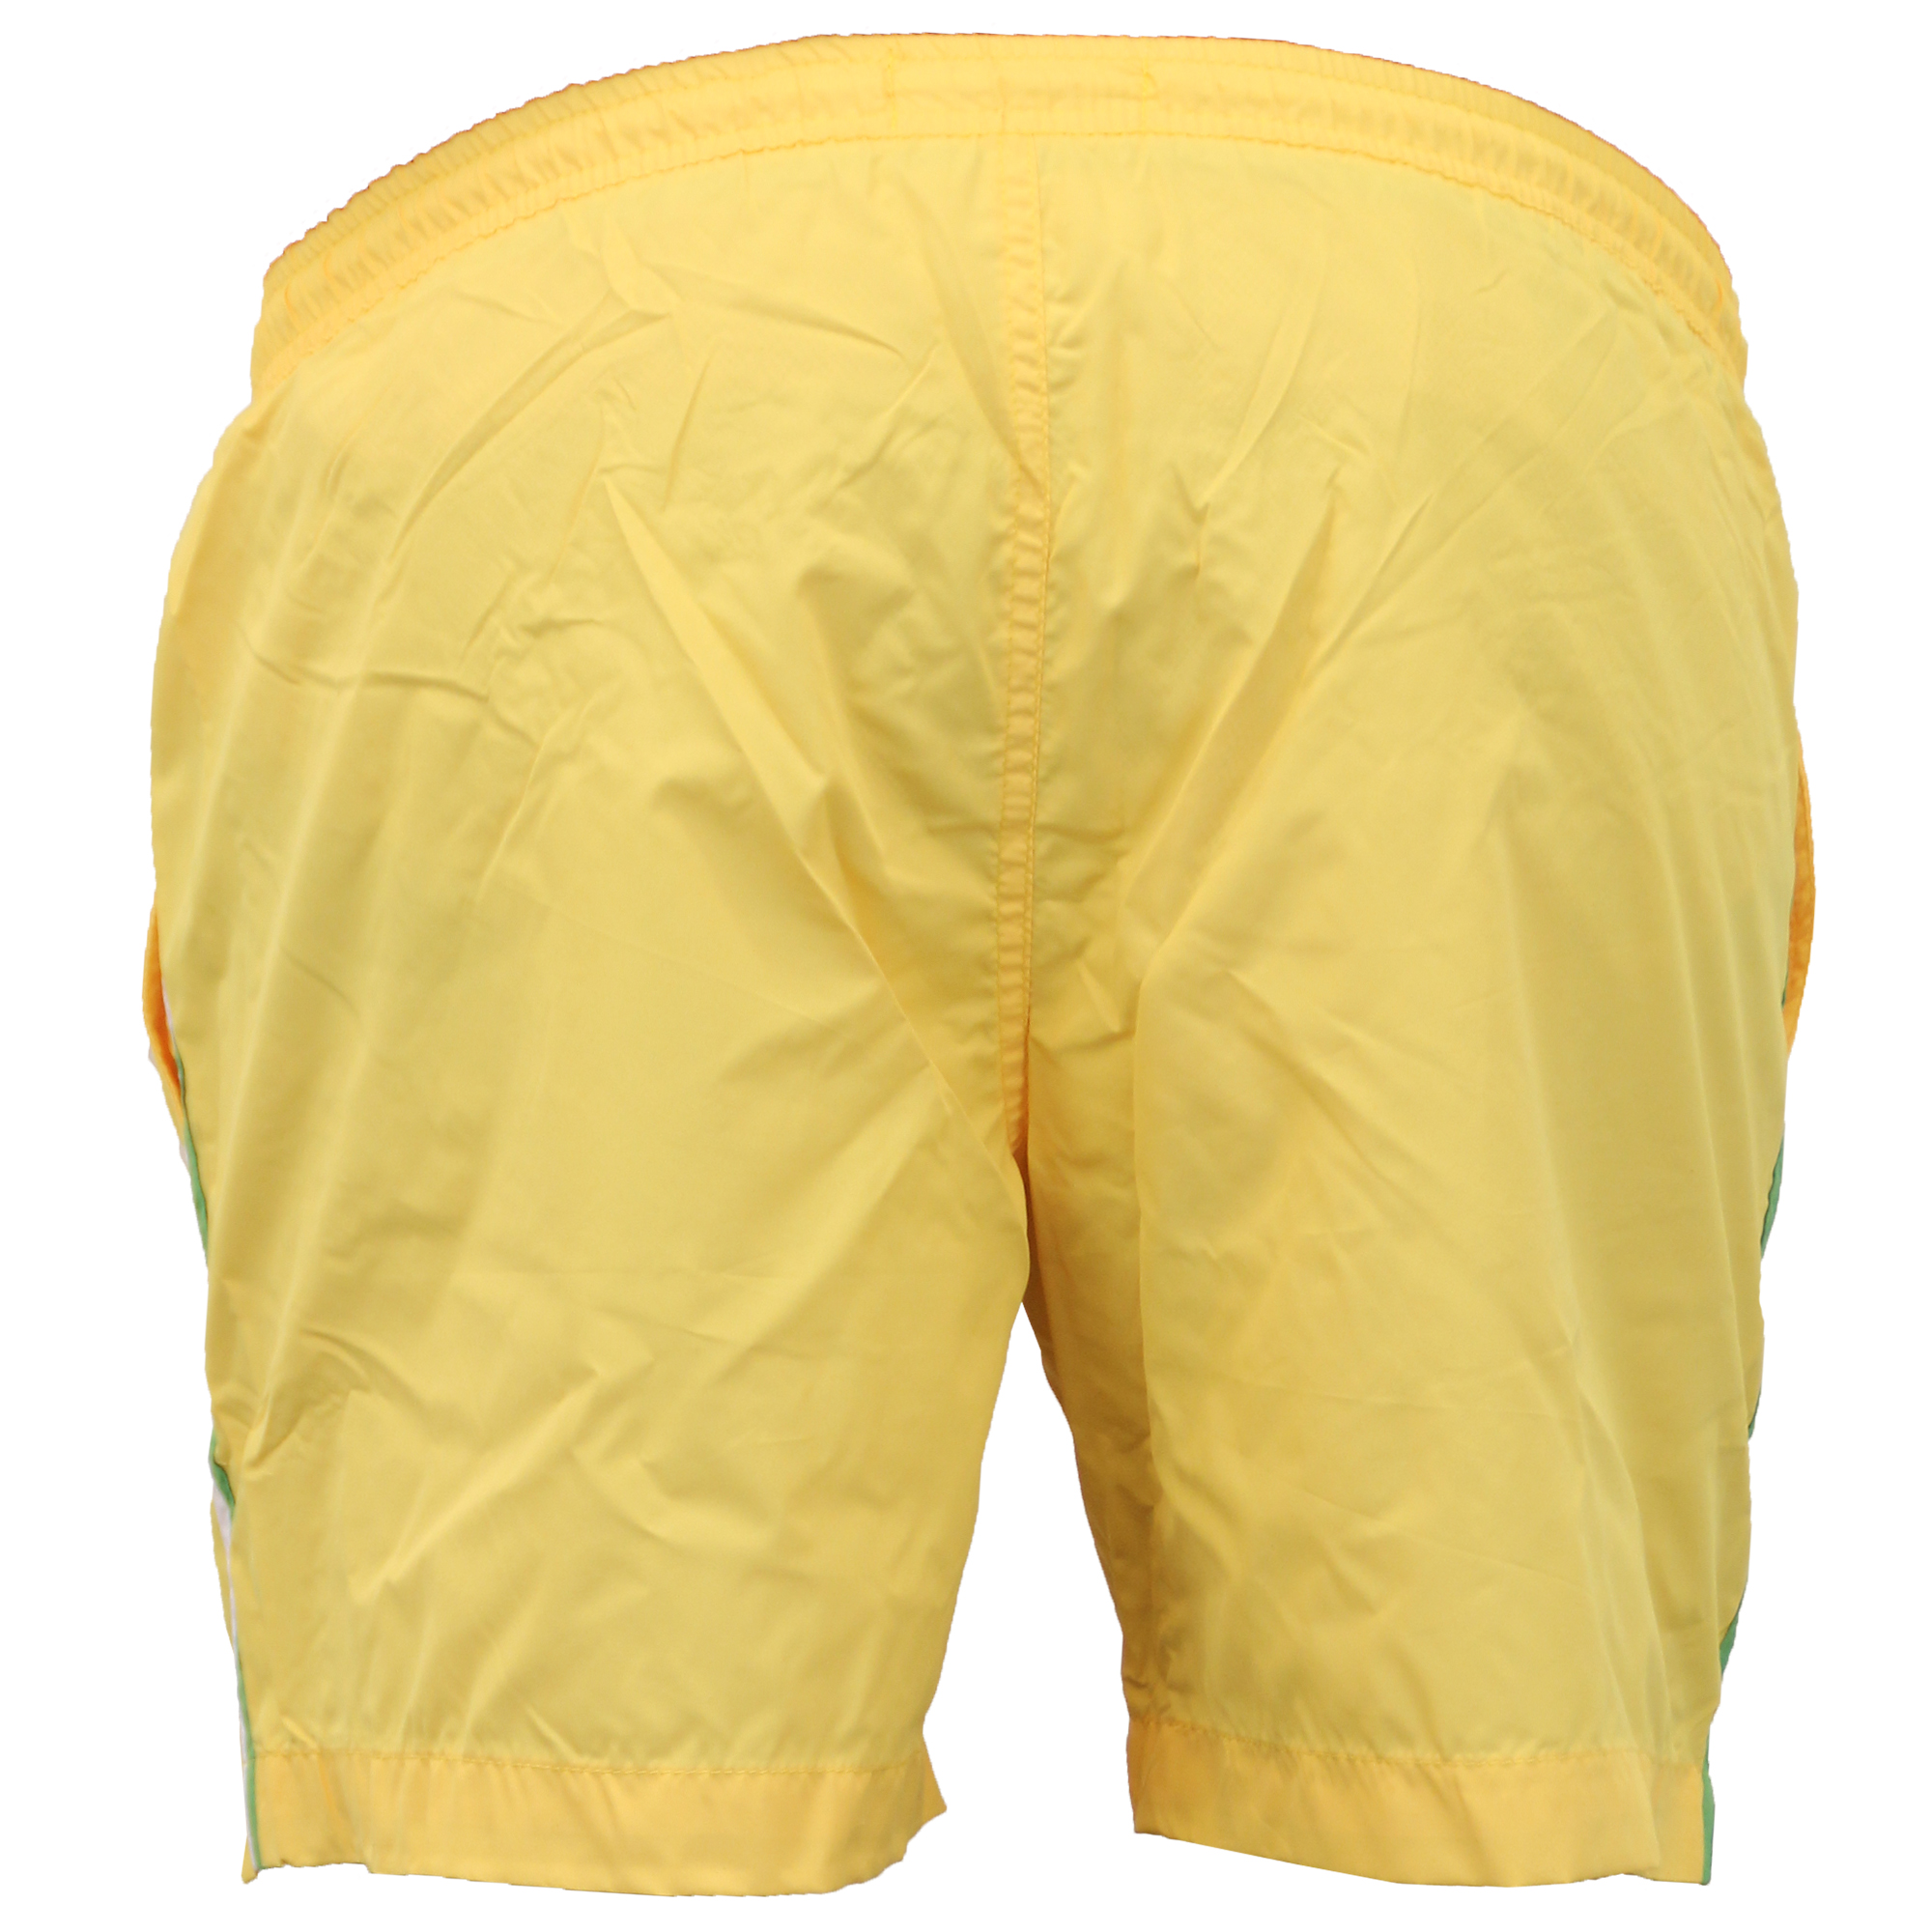 Mens-Swim-Board-Shorts-By-Brave-Soul-Mesh-Lined-New thumbnail 74